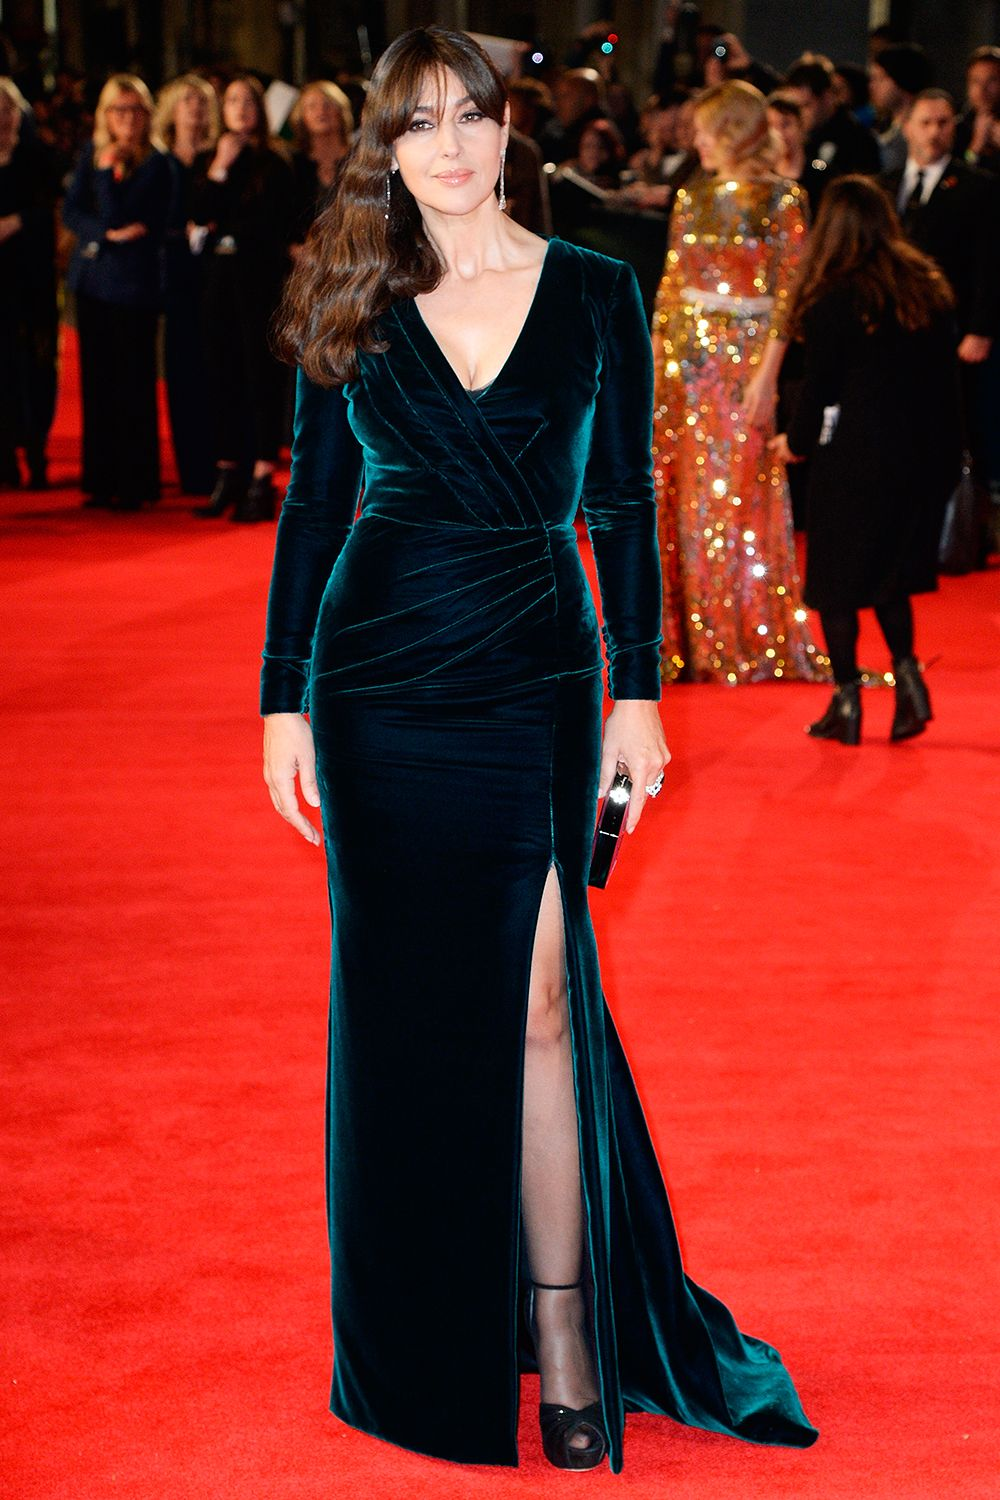 c42dfba356a Monica Bellucci in Ralph   Russo Couture with  Chopard jewels attends the  Royal Film Performance of